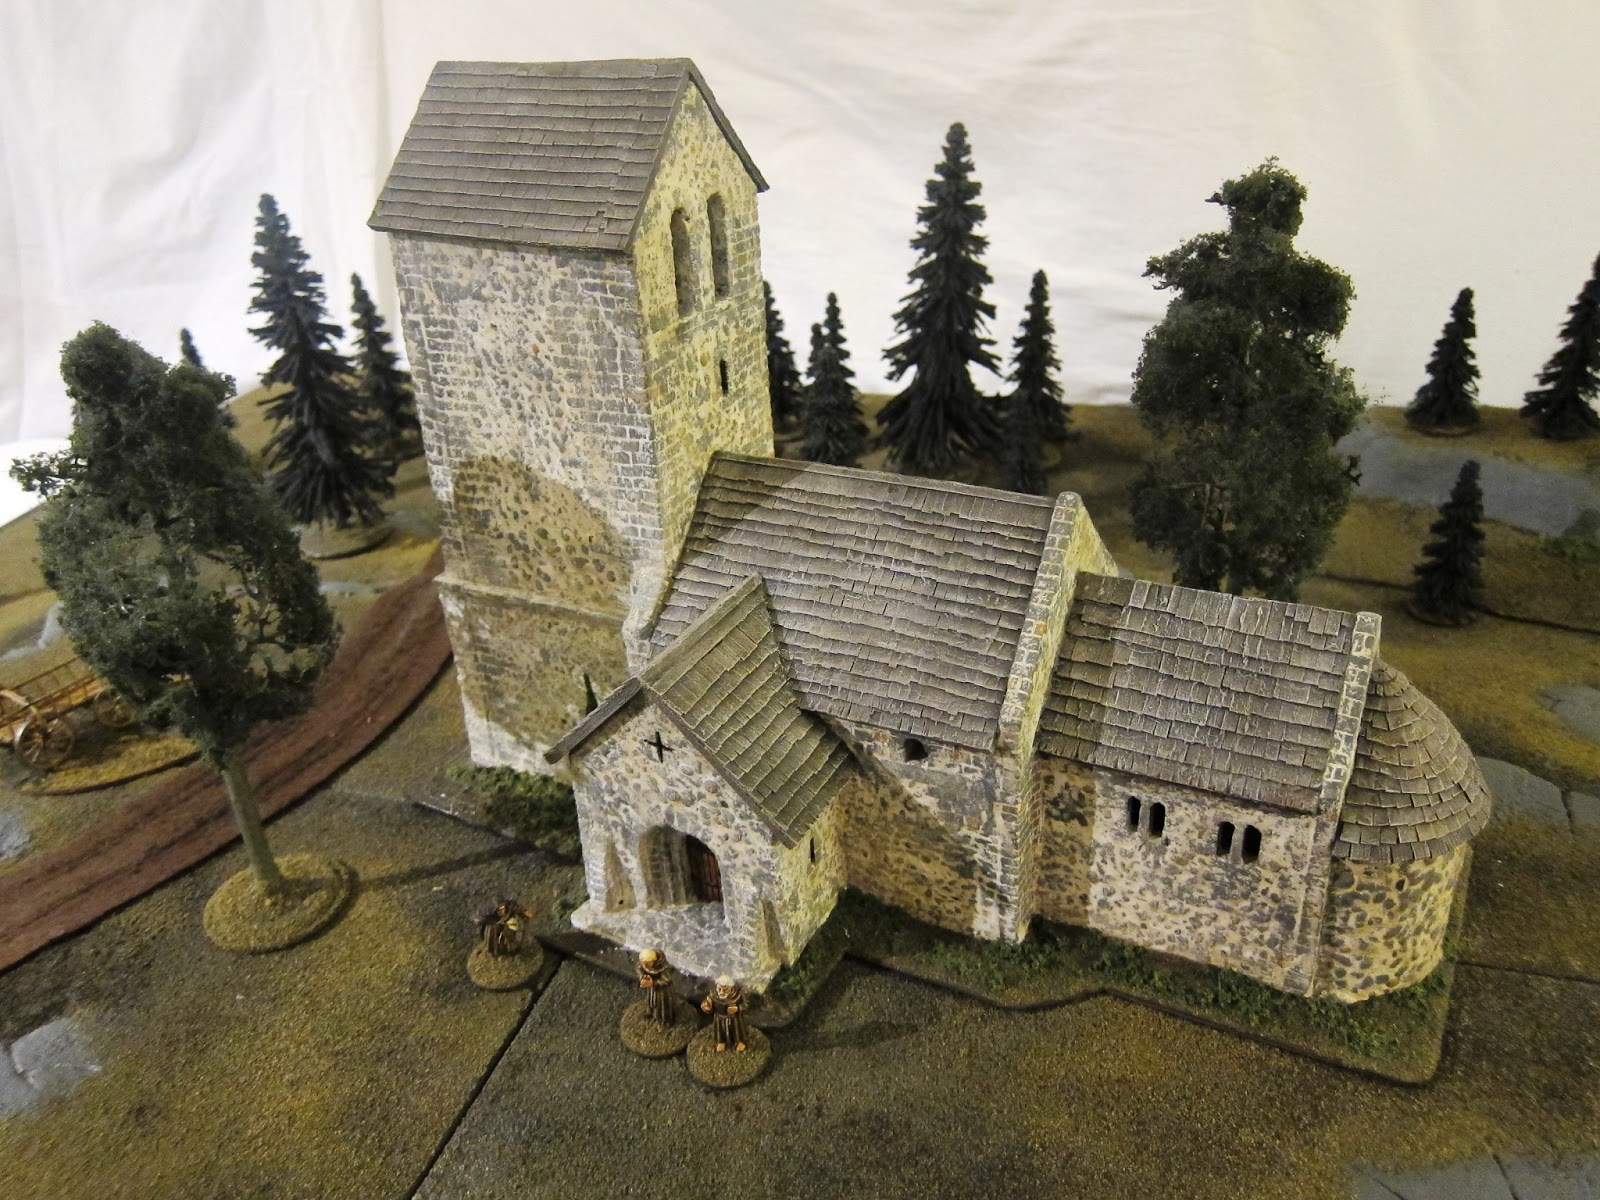 Northern wargaming building a medieval church in 28mm scale for Miniature architecture